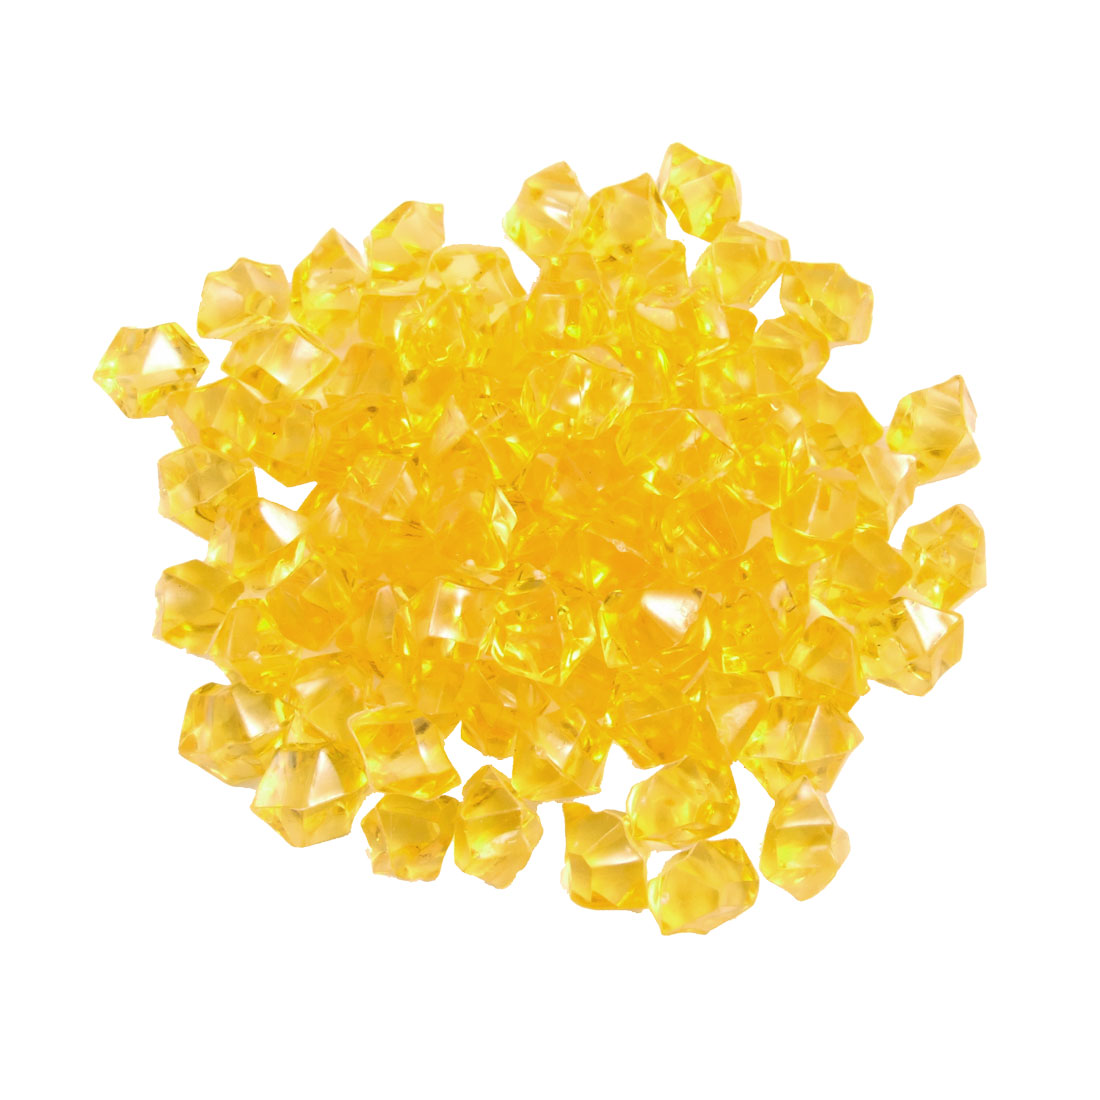 150 Pcs Plastic Crystal Stones Ornament Yellow for Fish Tank